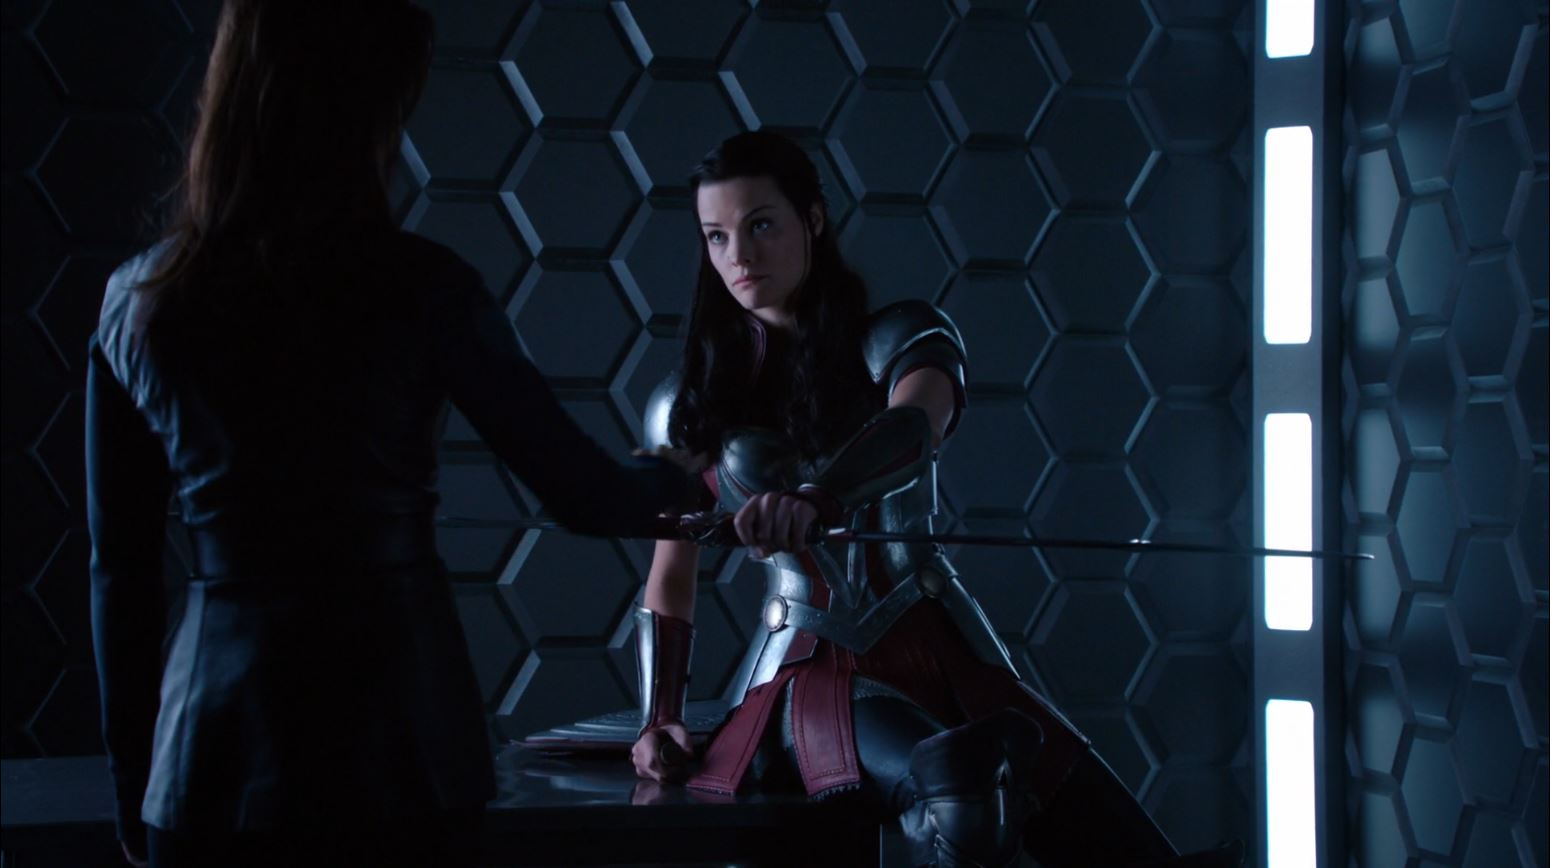 Agents of S.H.I.E.L.D S1Ep15 'Yes Men' - Jaime Alexander as Lady Sif shares her sword with agent May